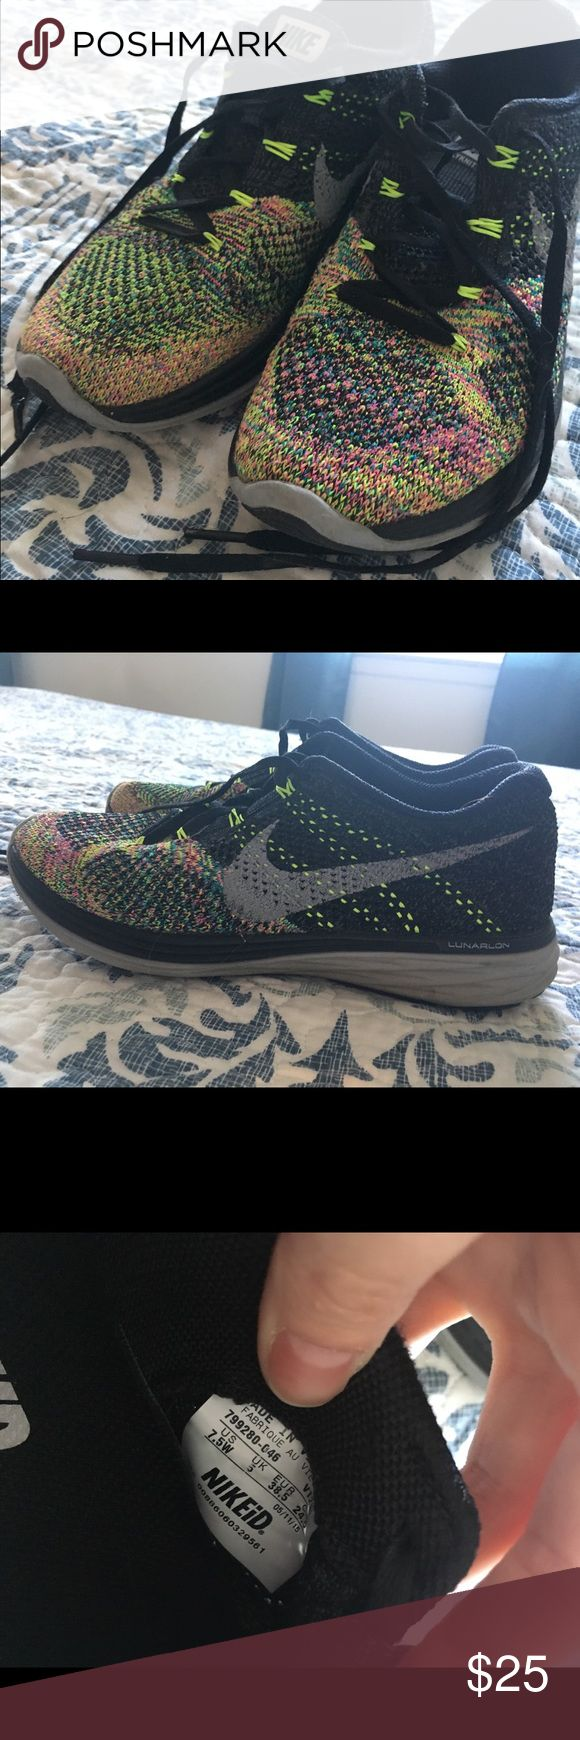 Nike NikeiD Lunarlon Sneakers 7.5 Wide - Colorful NikeiD Sneaker Nike Shoes Athletic Shoes